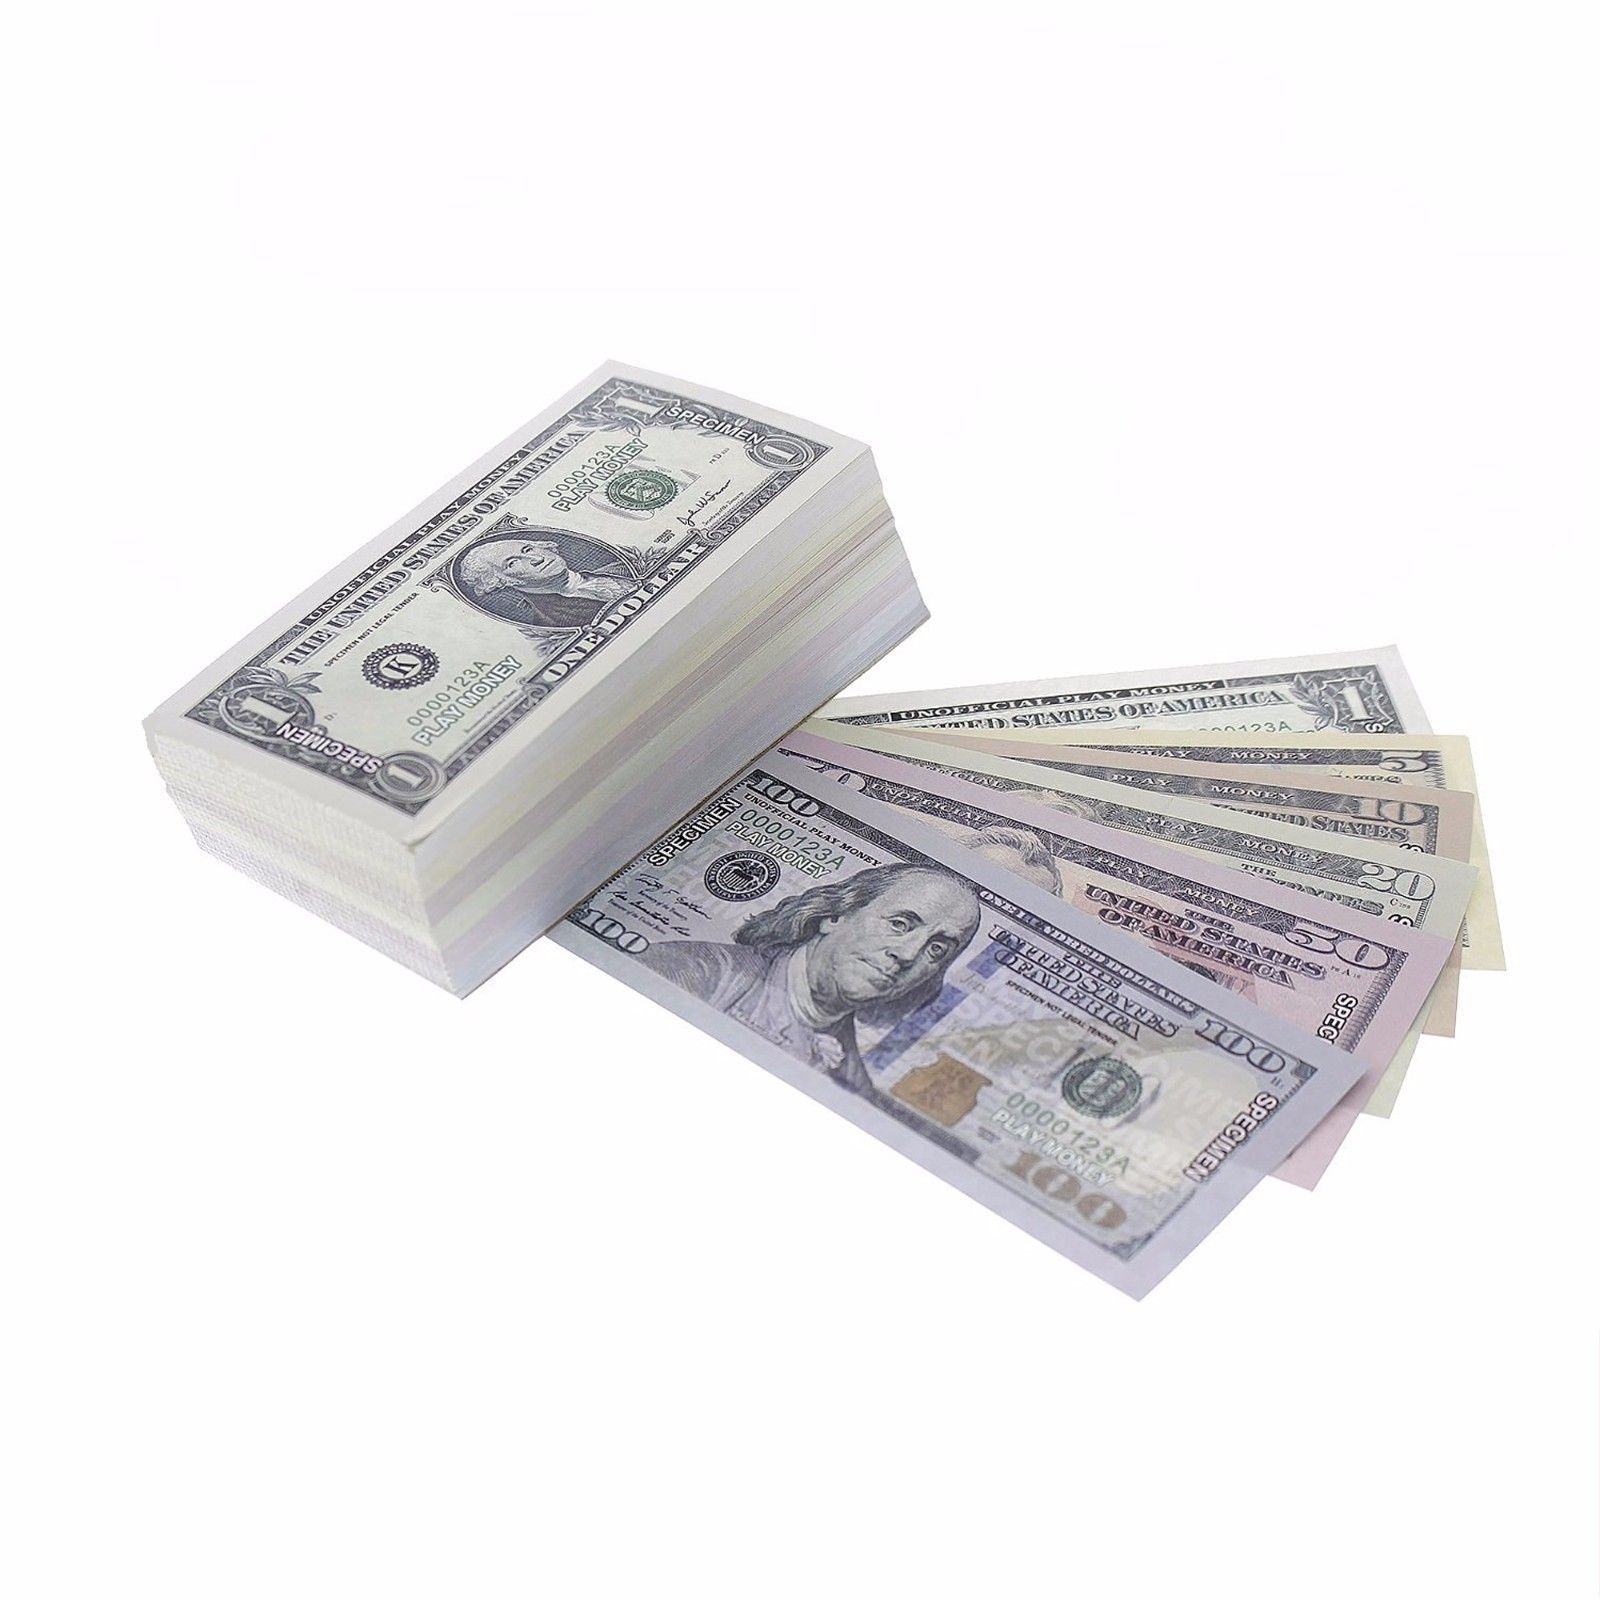 little money essay Ielts model essay score 9 for a doctor doing volunteer work in underdeveloped countries may have very little money but the reward of helping people and.